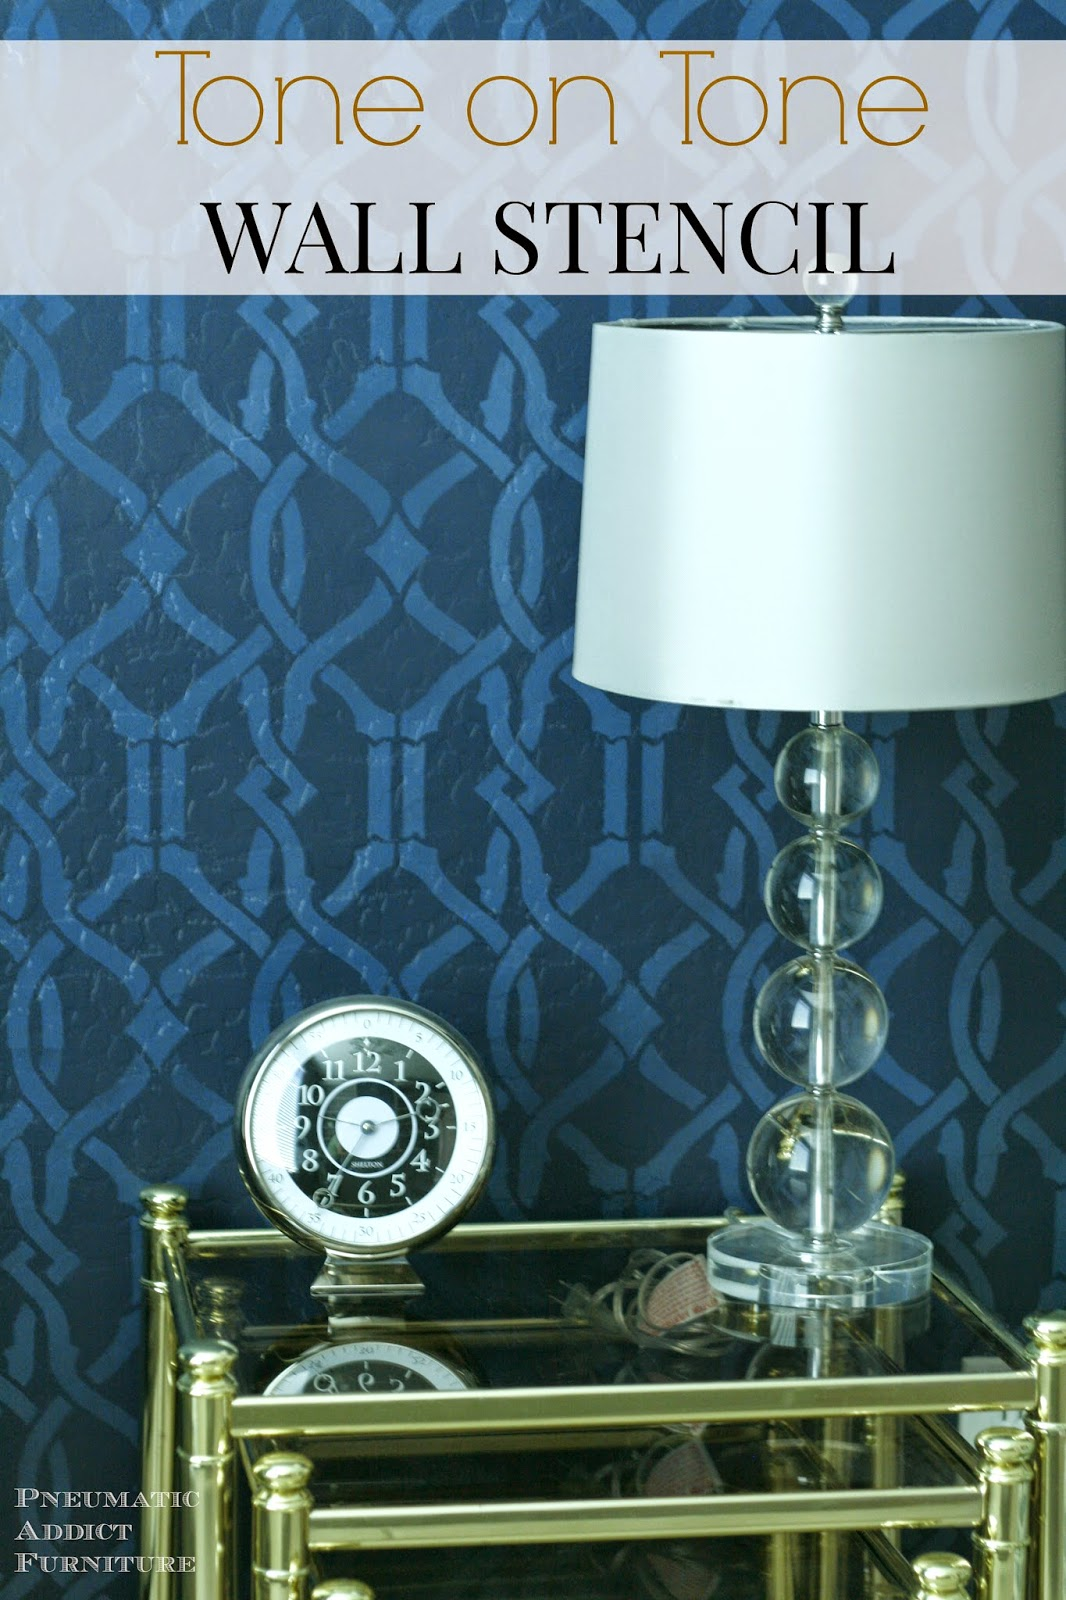 How to create a tone on tone pattern on a wall using a stencil